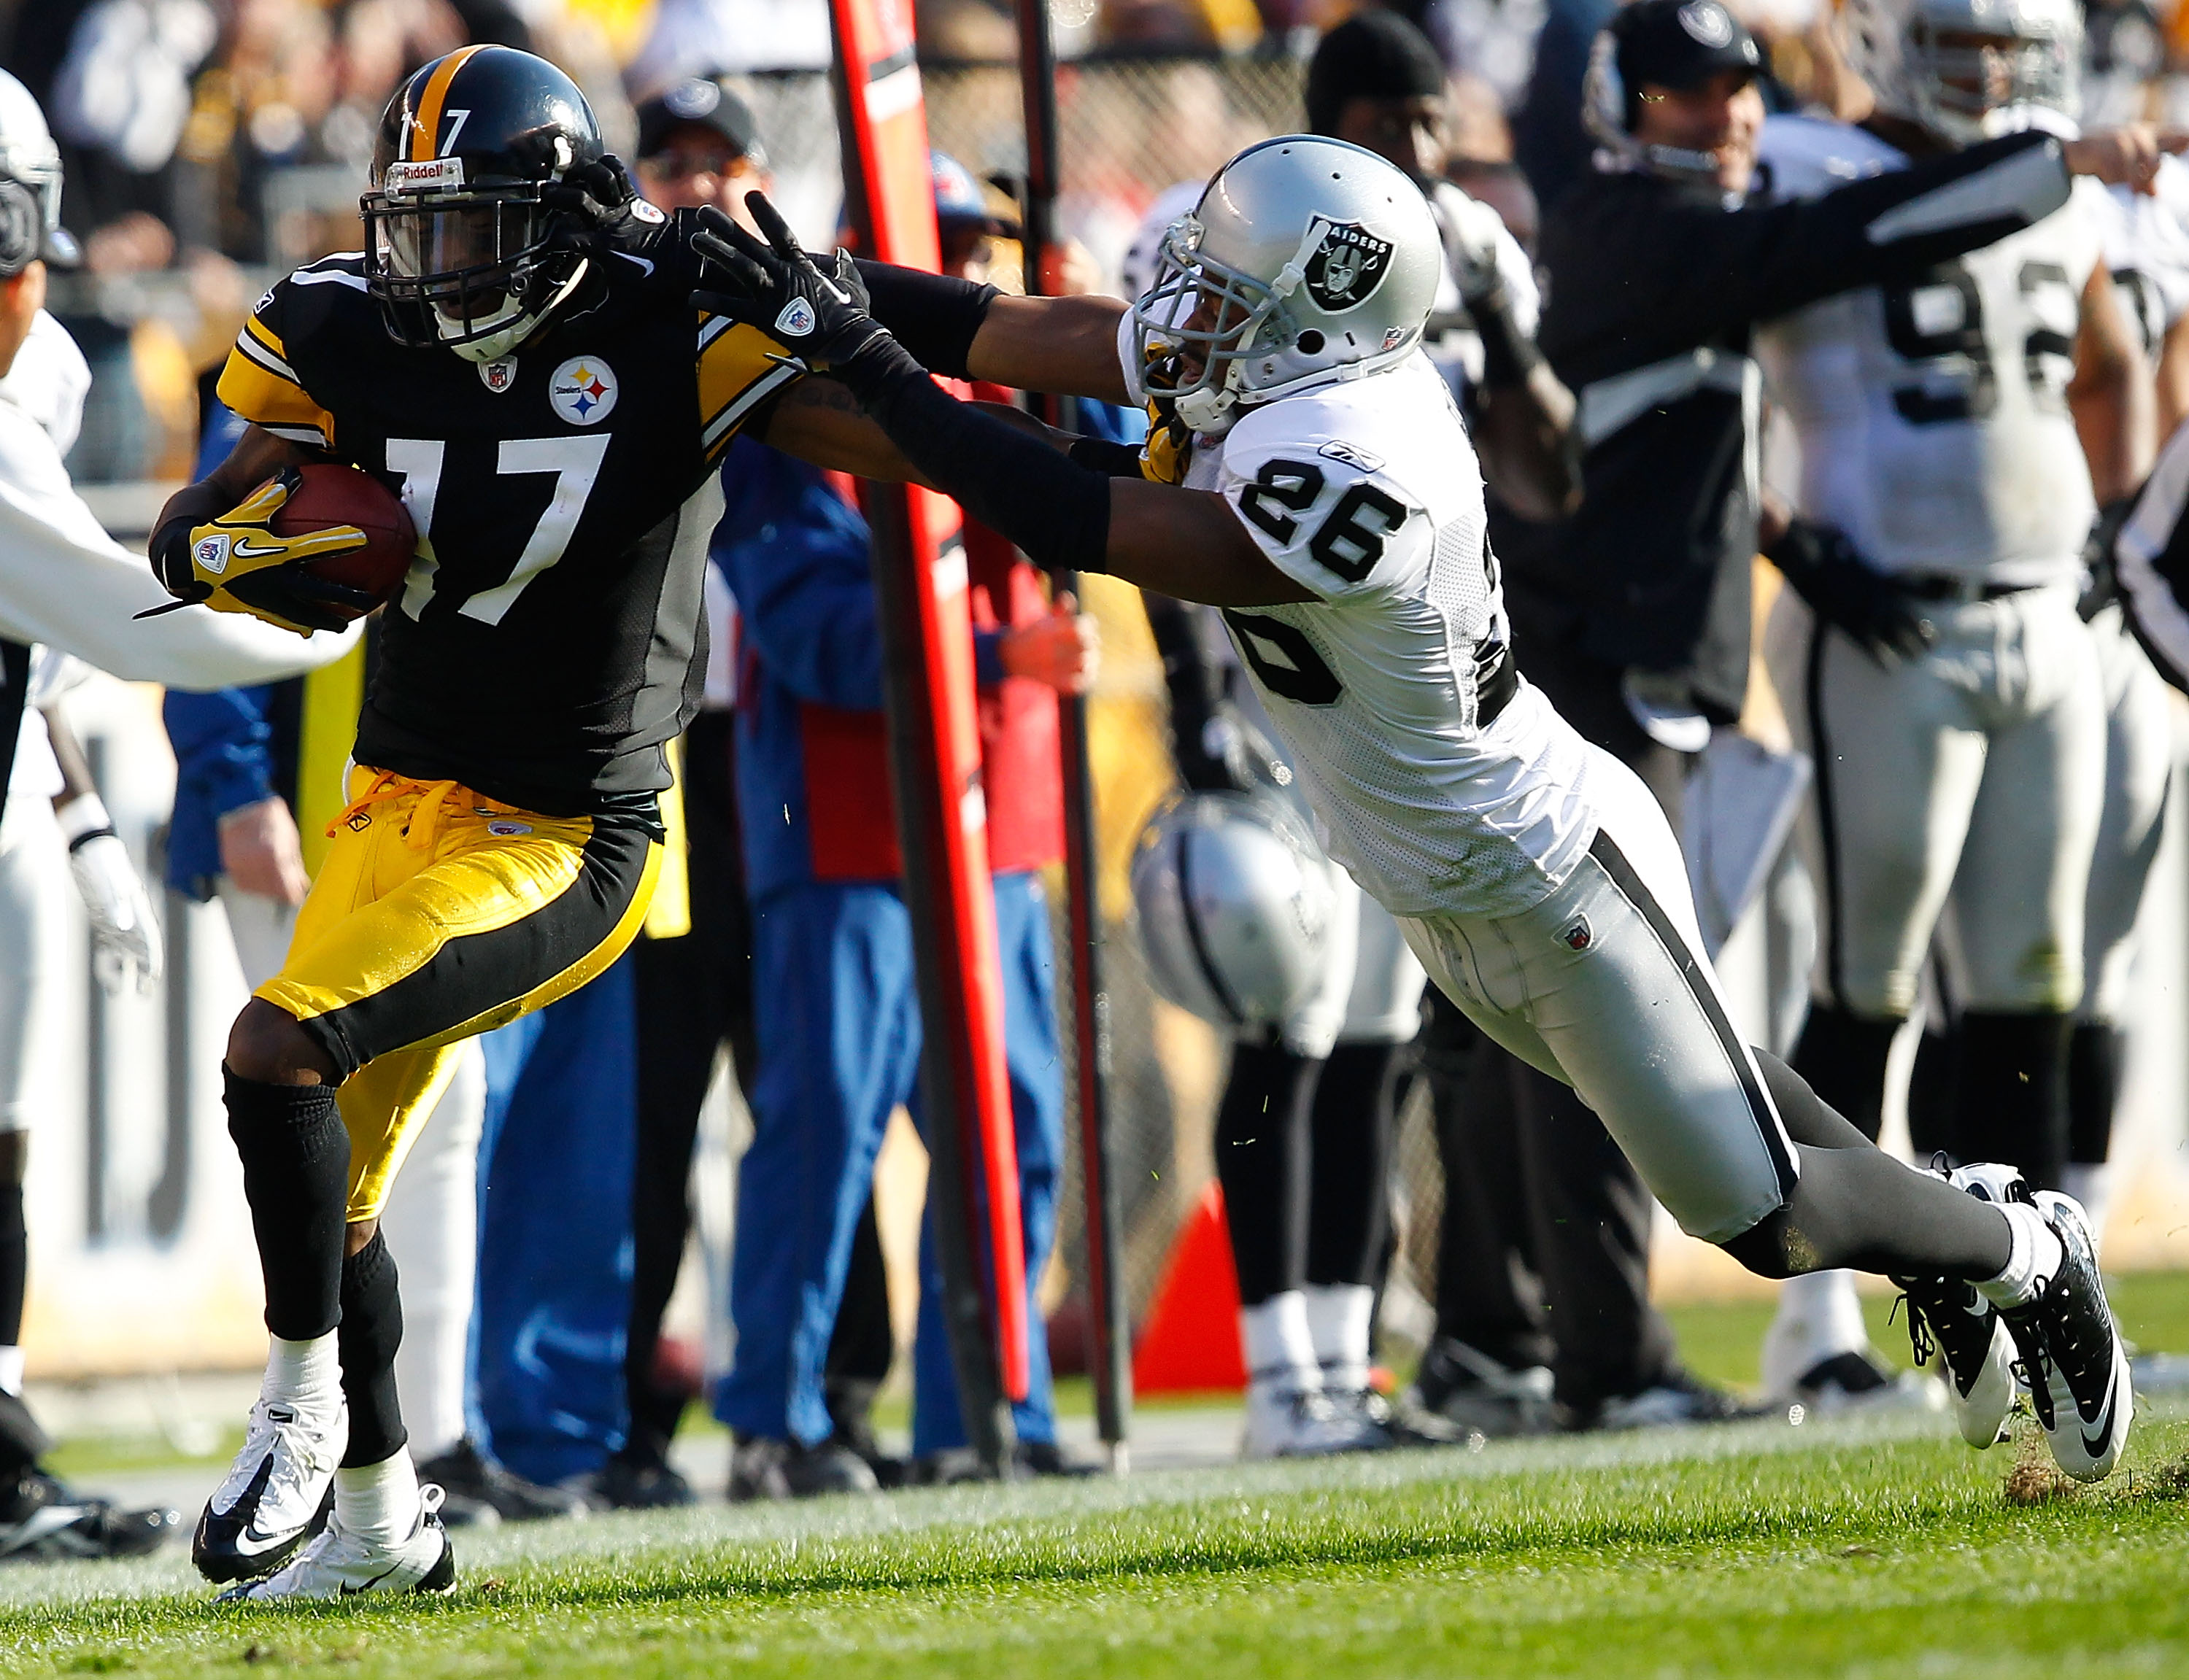 PITTSBURGH - NOVEMBER 21:  Mike Wallace #17 of the Pittsburgh Steelers attempts to outrun a tackle by Stanford Routt #26 of the Oakland Raiders during the game on November 21, 2010 at Heinz Field in Pittsburgh, Pennsylvania.  (Photo by Jared Wickerham/Get